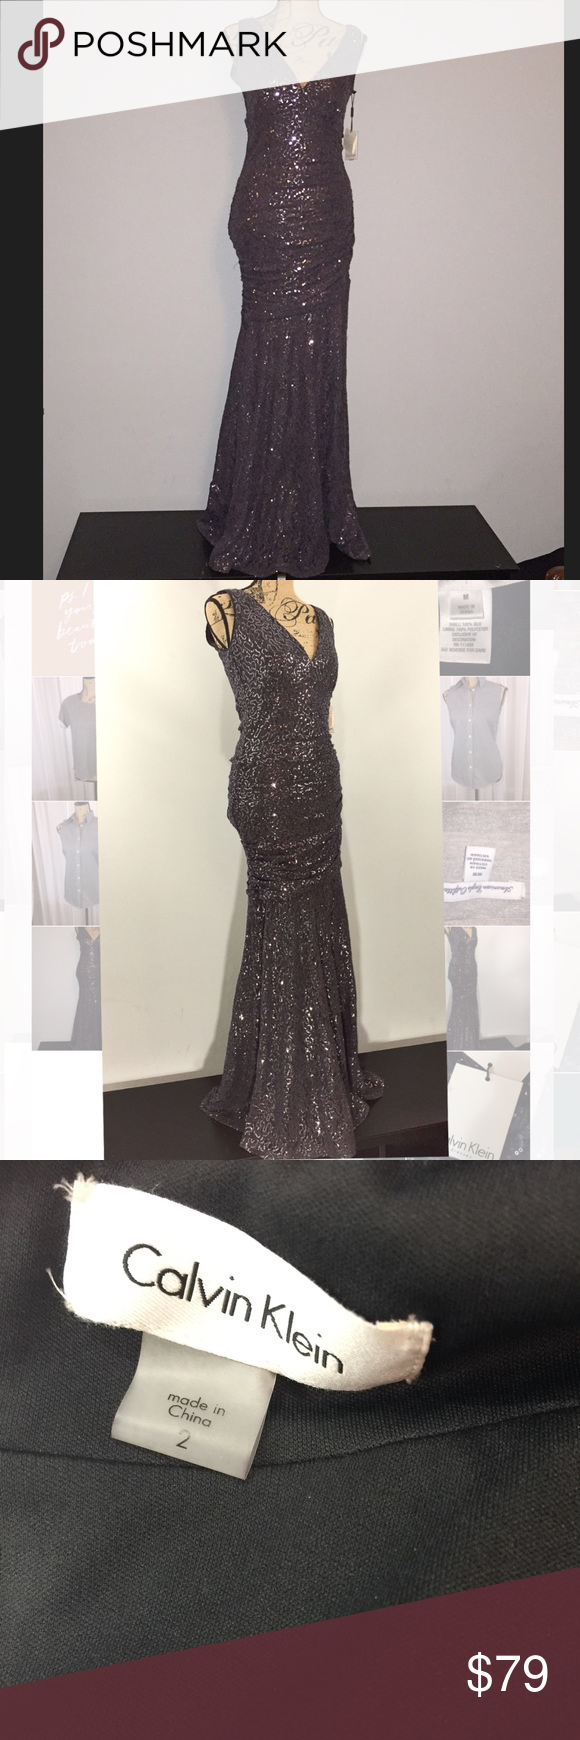 97be99c0baa9 Calvin Klein floor length sequin gown NWT Vneck midnight blue gown. Perfect  for formals, prom, & black tie events. Bunching around waist & hip then  loose ...